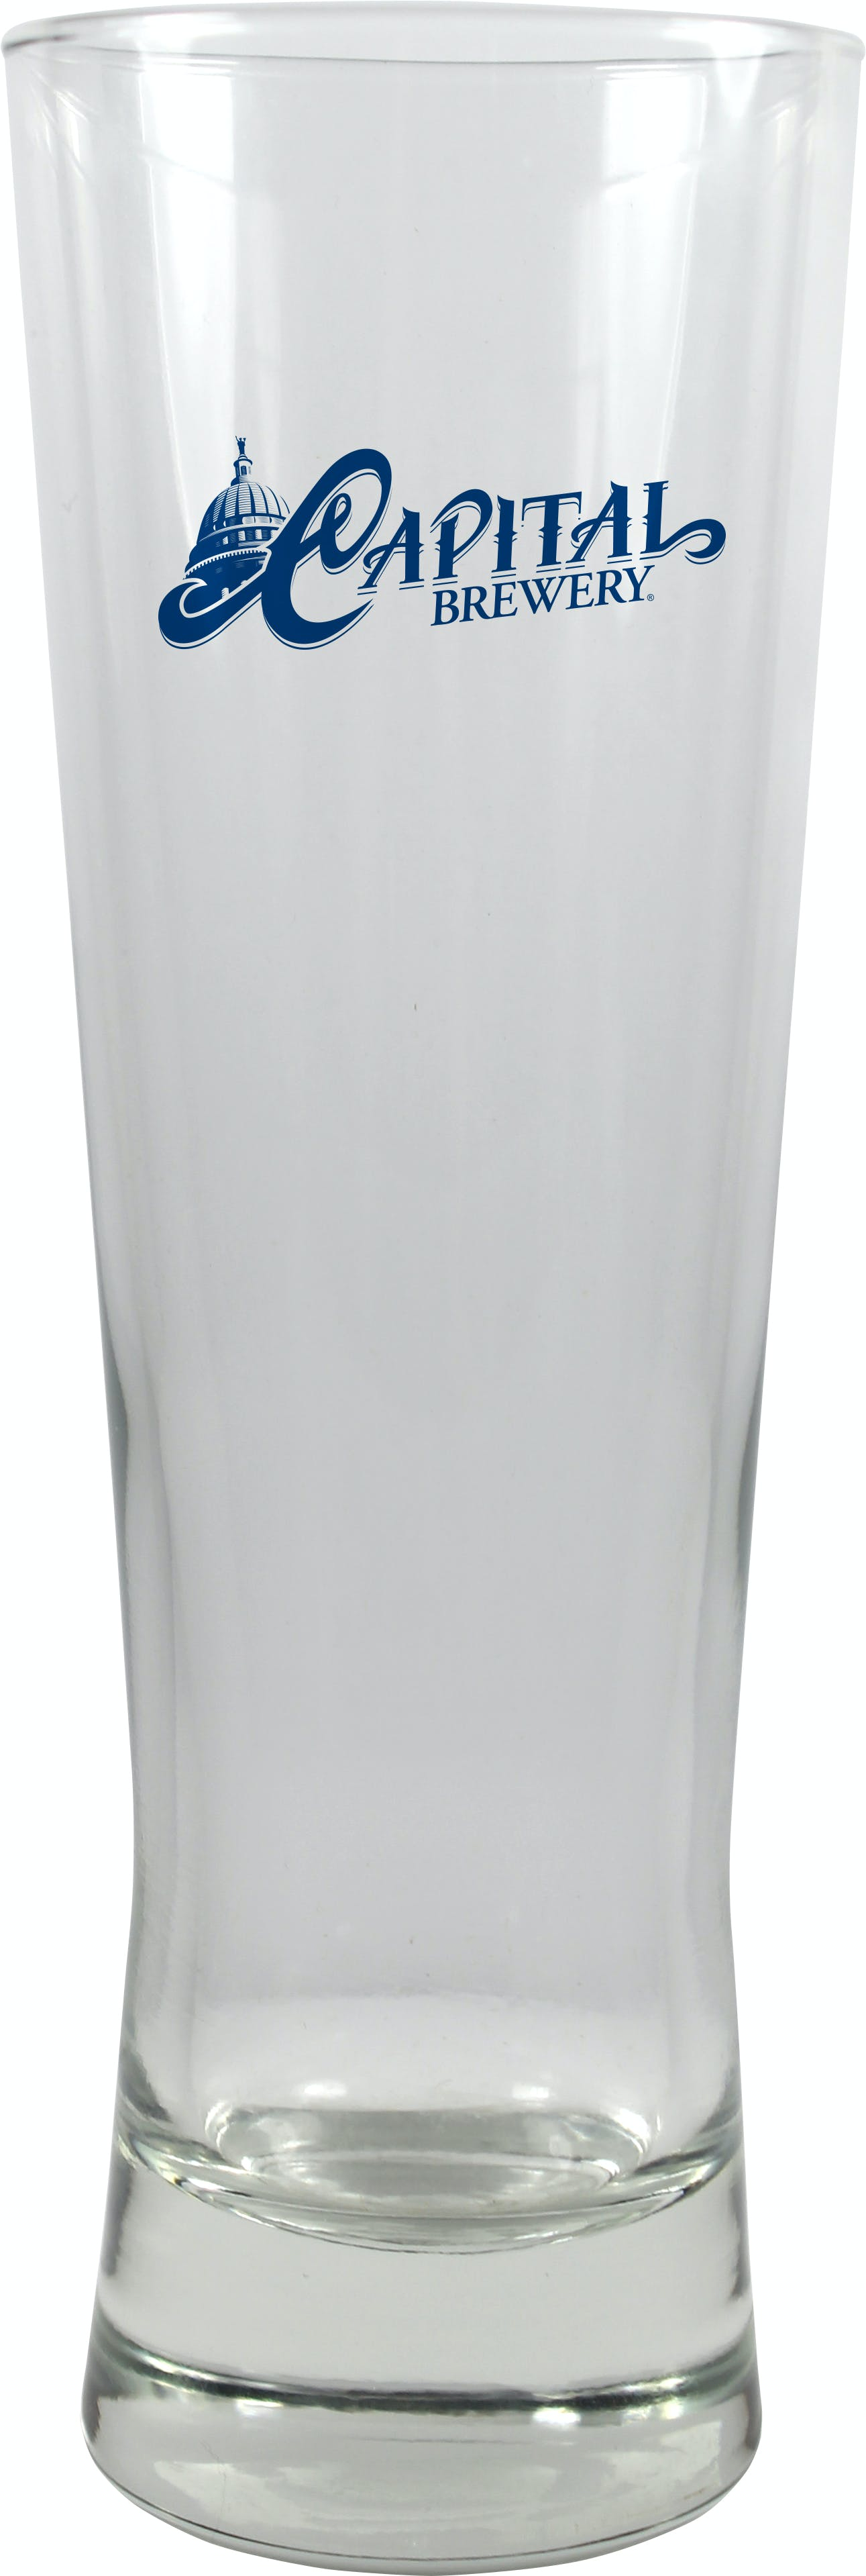 12.5 oz. Premium Pinnacle Beer Glass Beer glass sold by Prestige Glassware